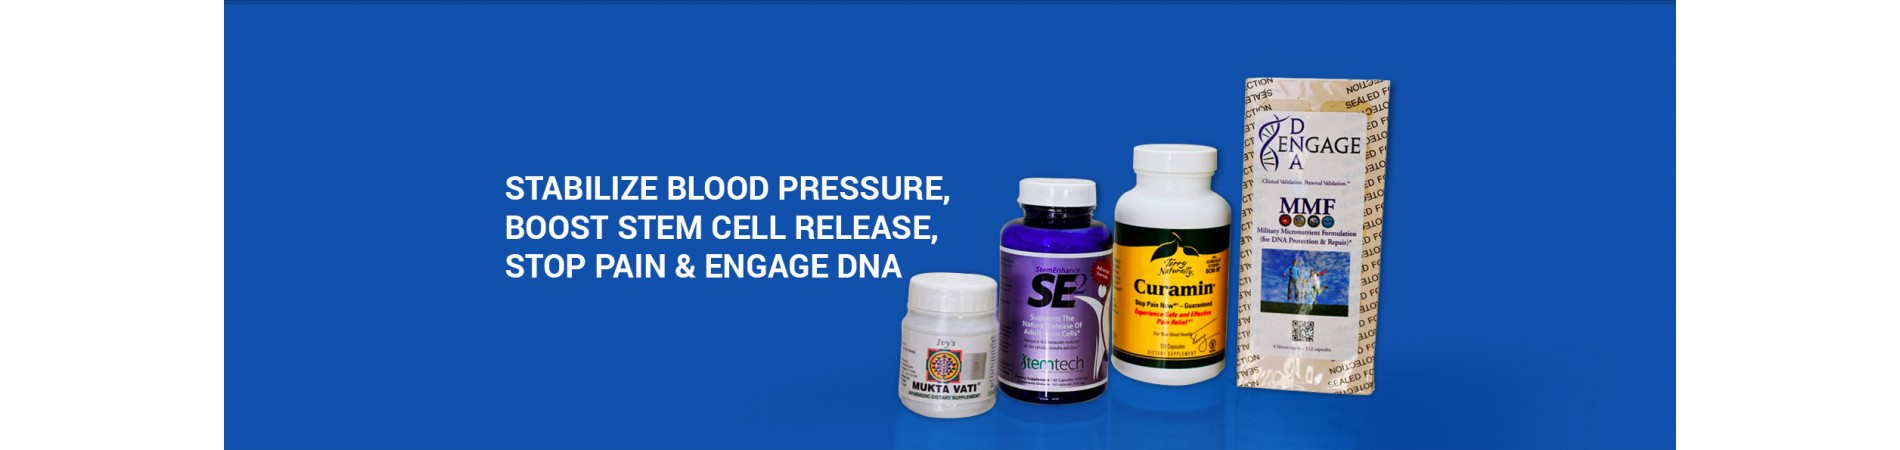 Stabilize Blood Pressure, Boost Stem Cell Release